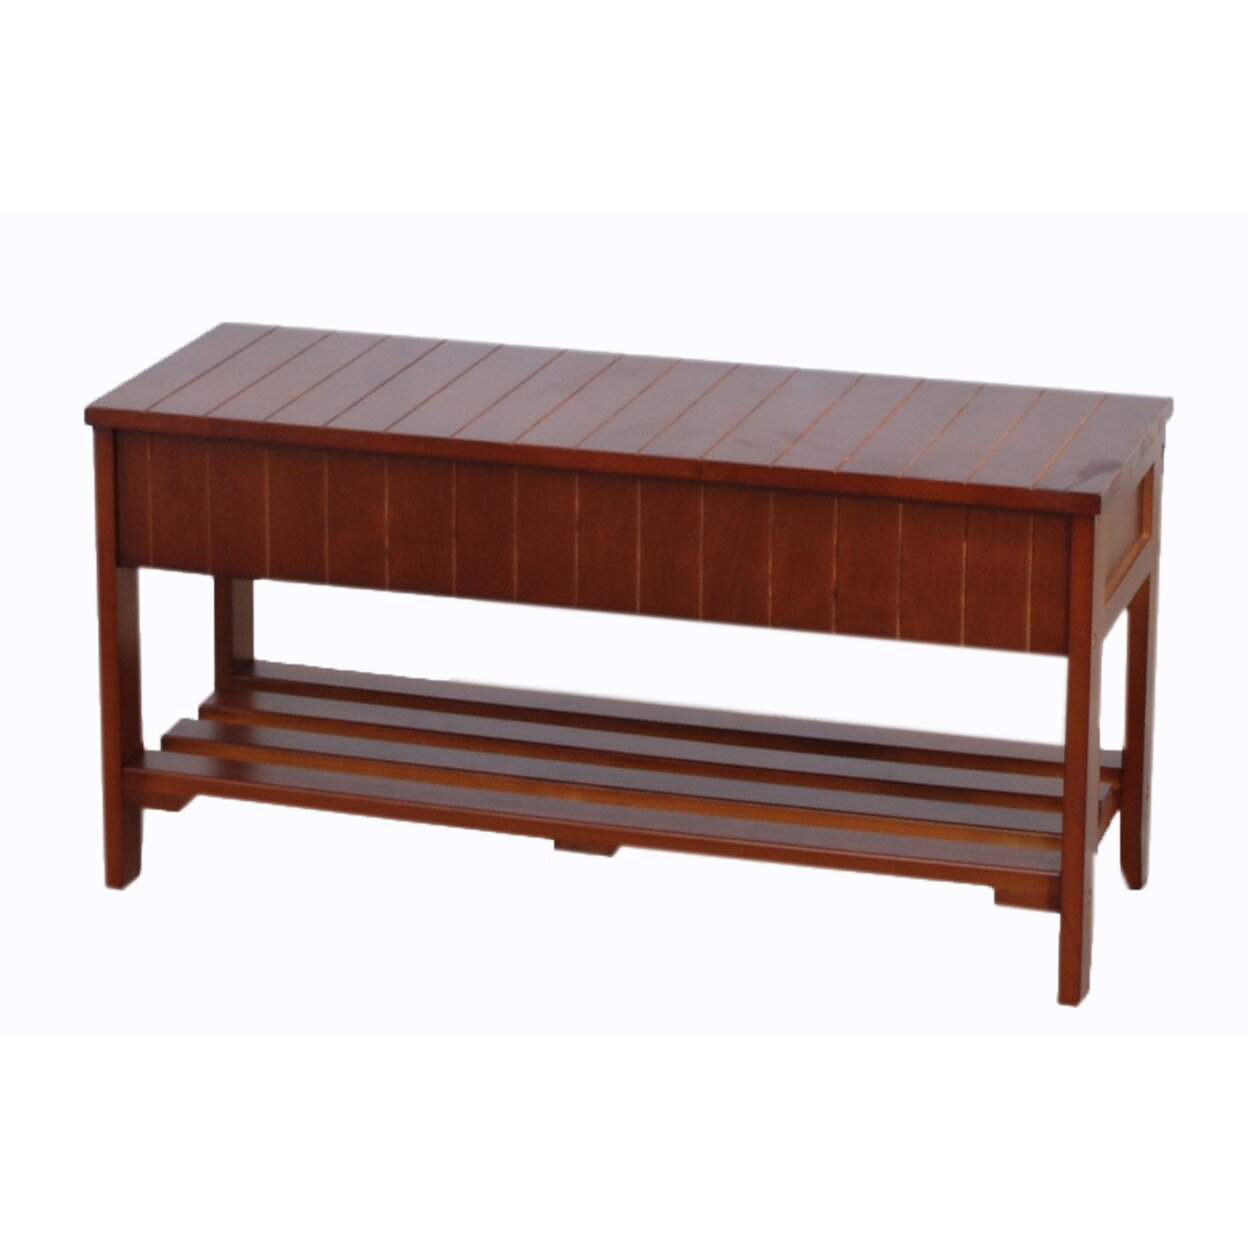 Roundhill Furniture Rennes Wood Storage Bench Reviews Wayfair